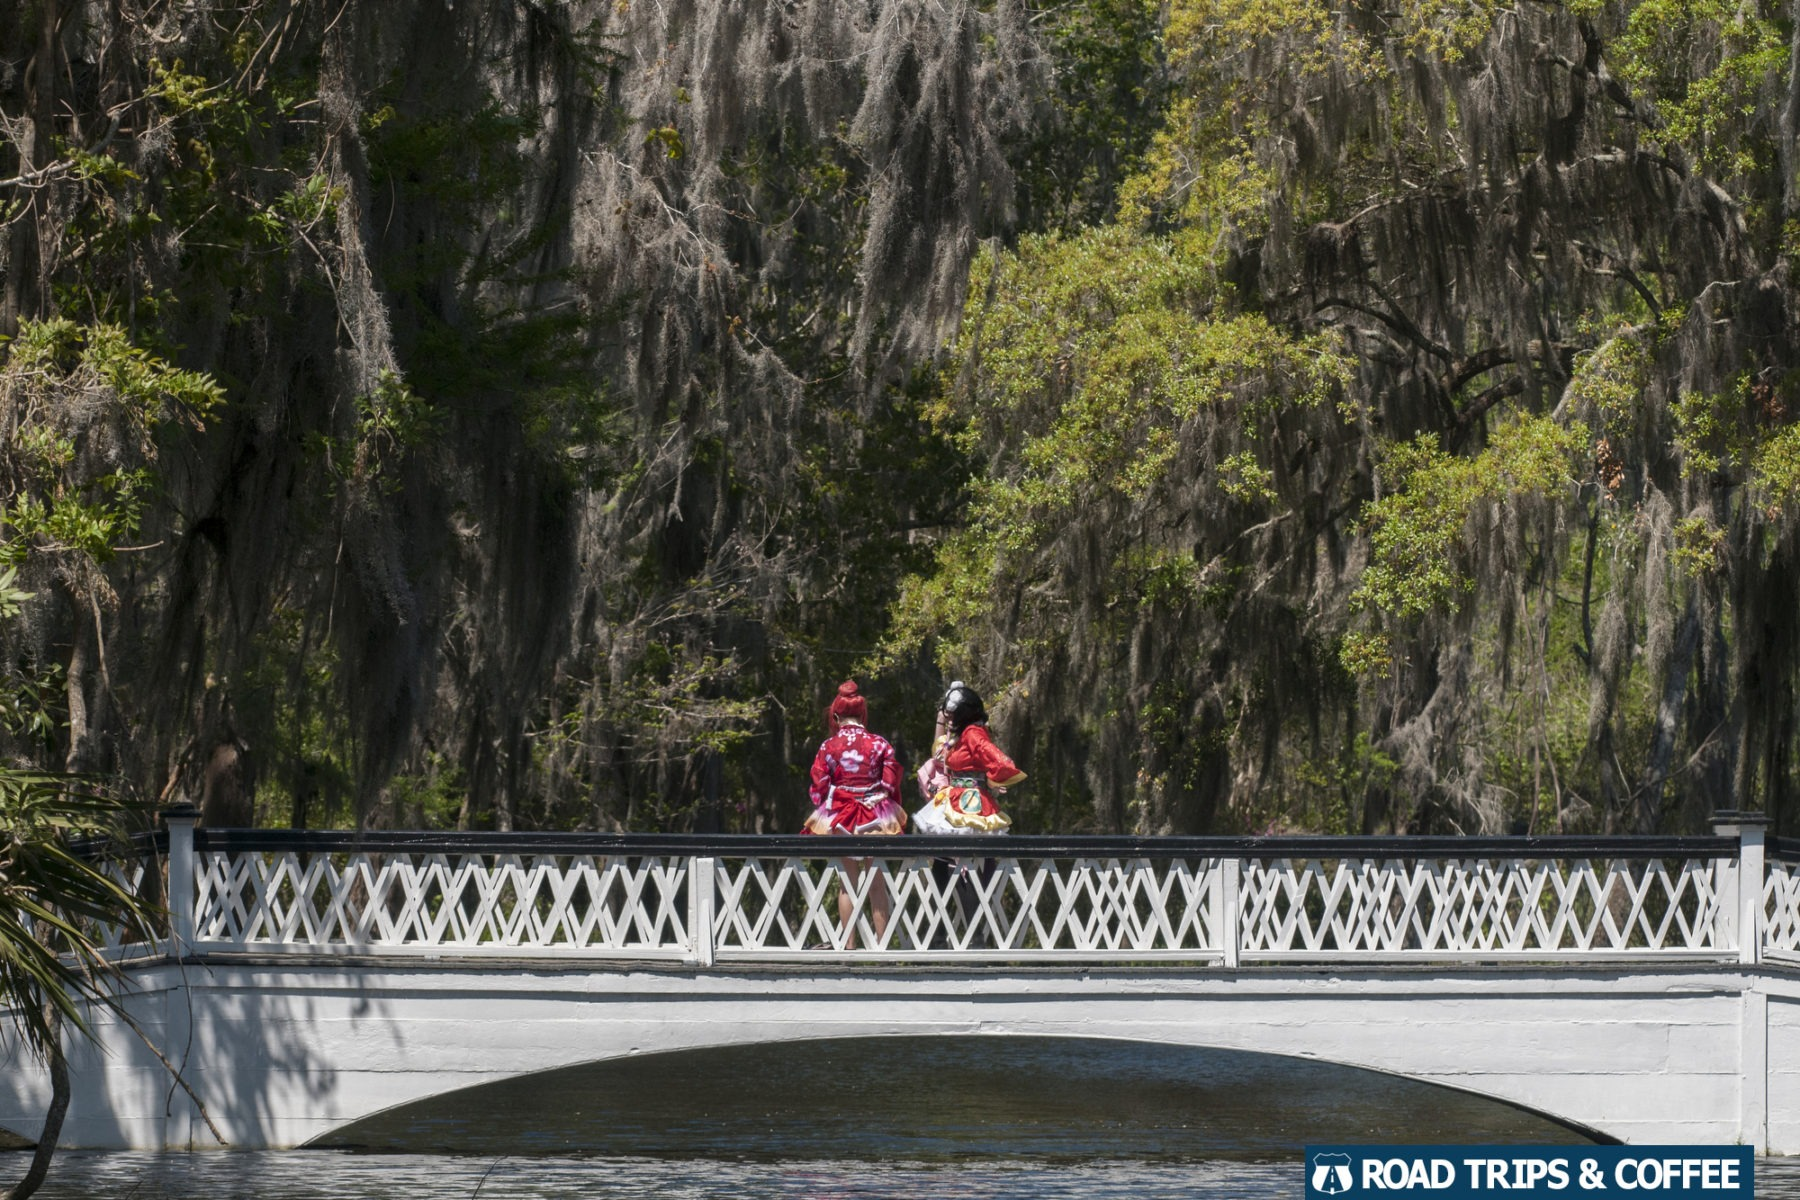 Two women dressed as 1800s women walk across a bridge at Magnolia Plantation and Garden in Charleston, South Carolina